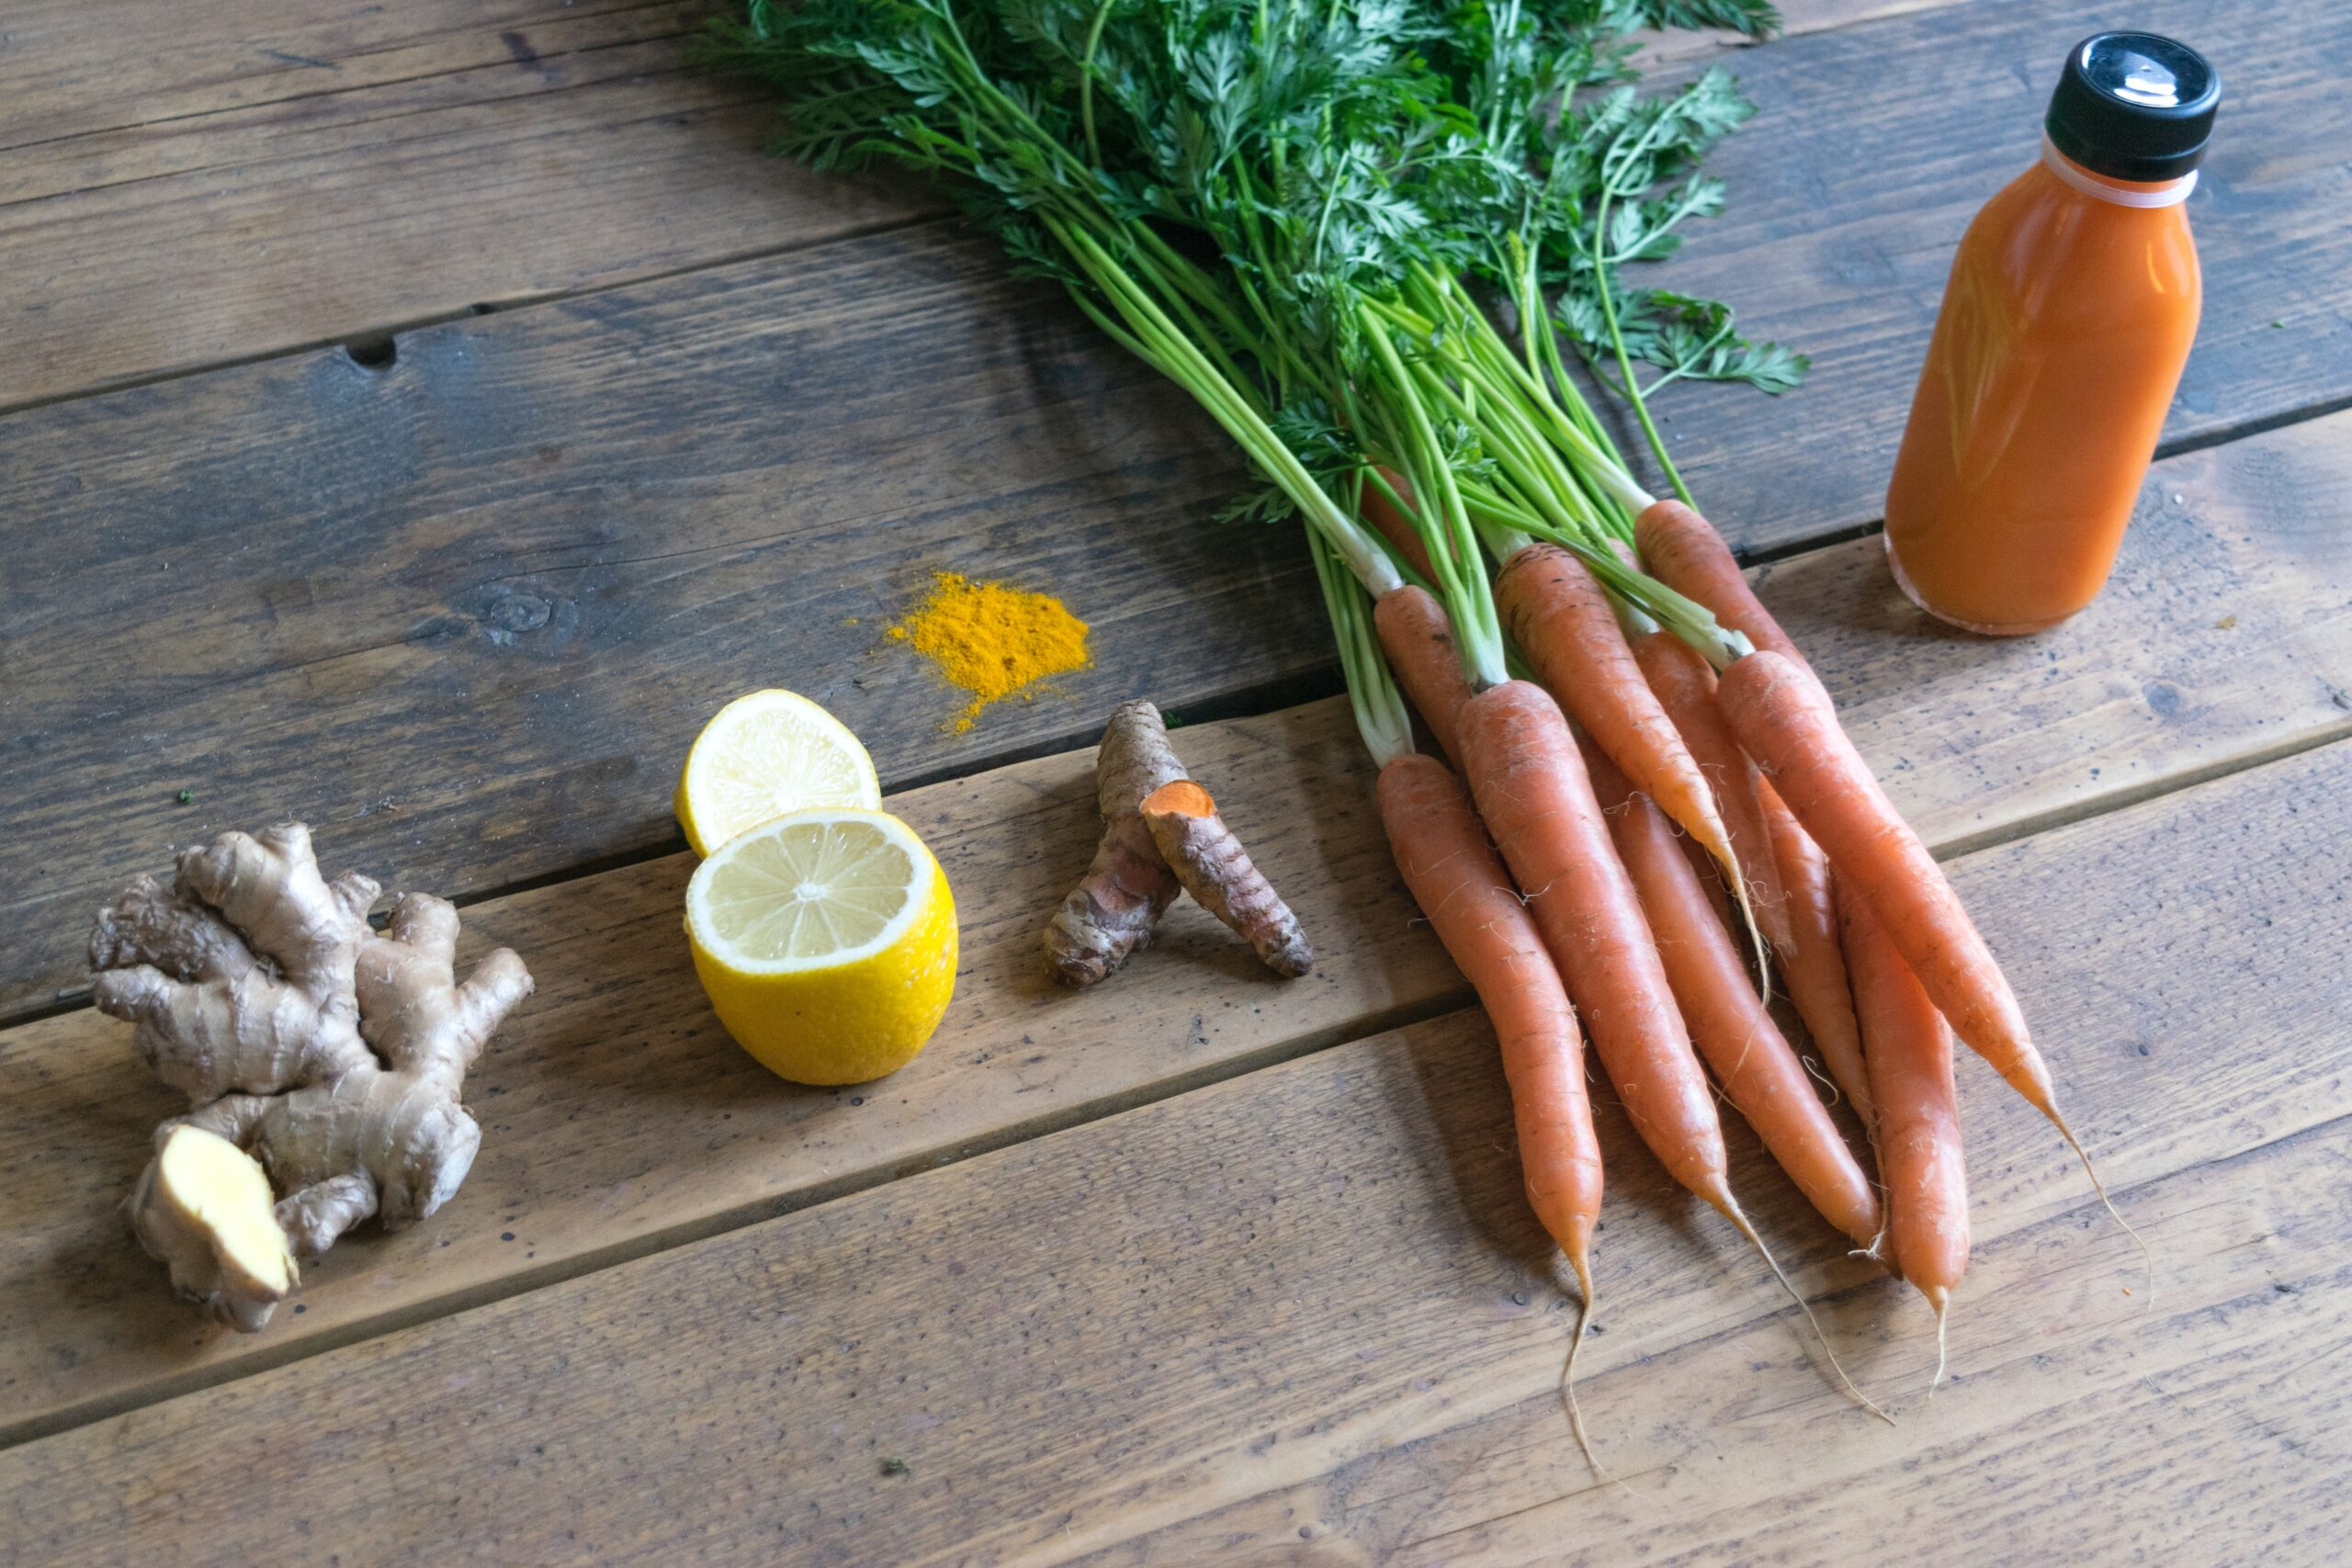 Ginger, turmeric, lemon and carrots made into a juice